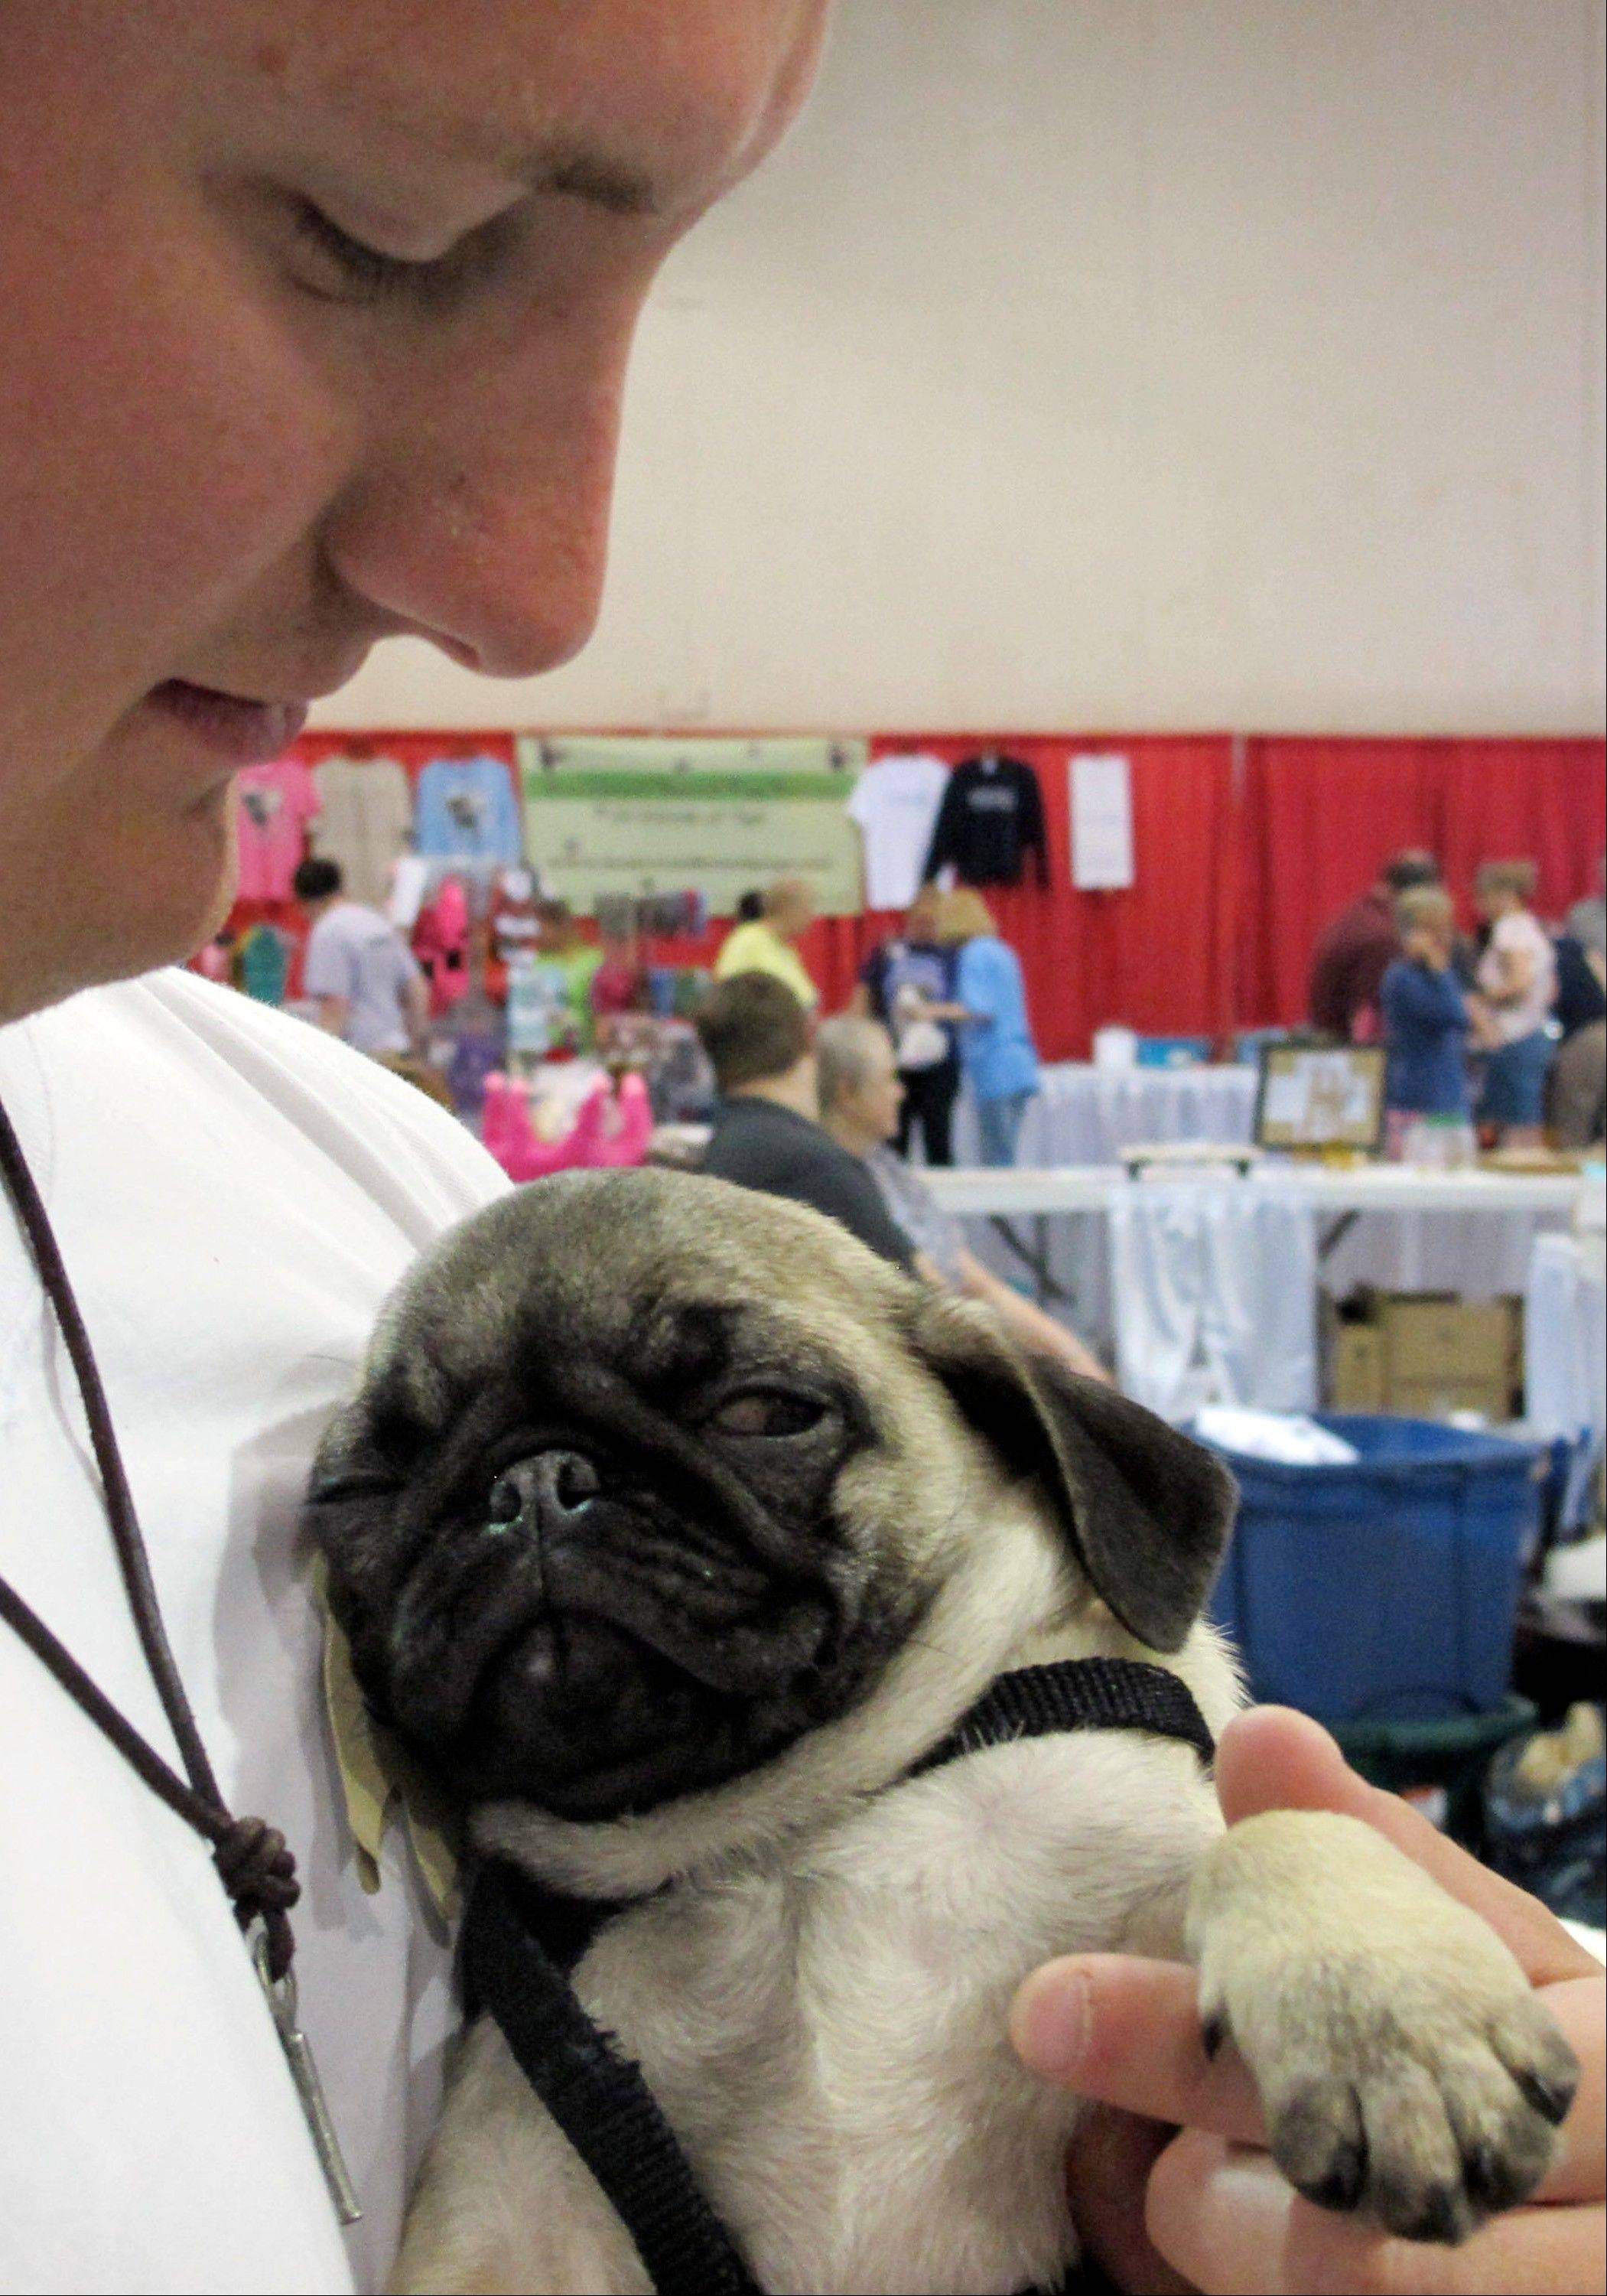 Jeremy Donnell, 23, holds a sleepy 12-week old pug puppy at Milwaukee Pug Fest in Franklin, Wis. The annual event, that helps pay for medical and dental bills for rescued pugs, attracted more than 1,700 pugs and other smushy-faced dogs along with 2,900 humans from the U.S. and Canada.